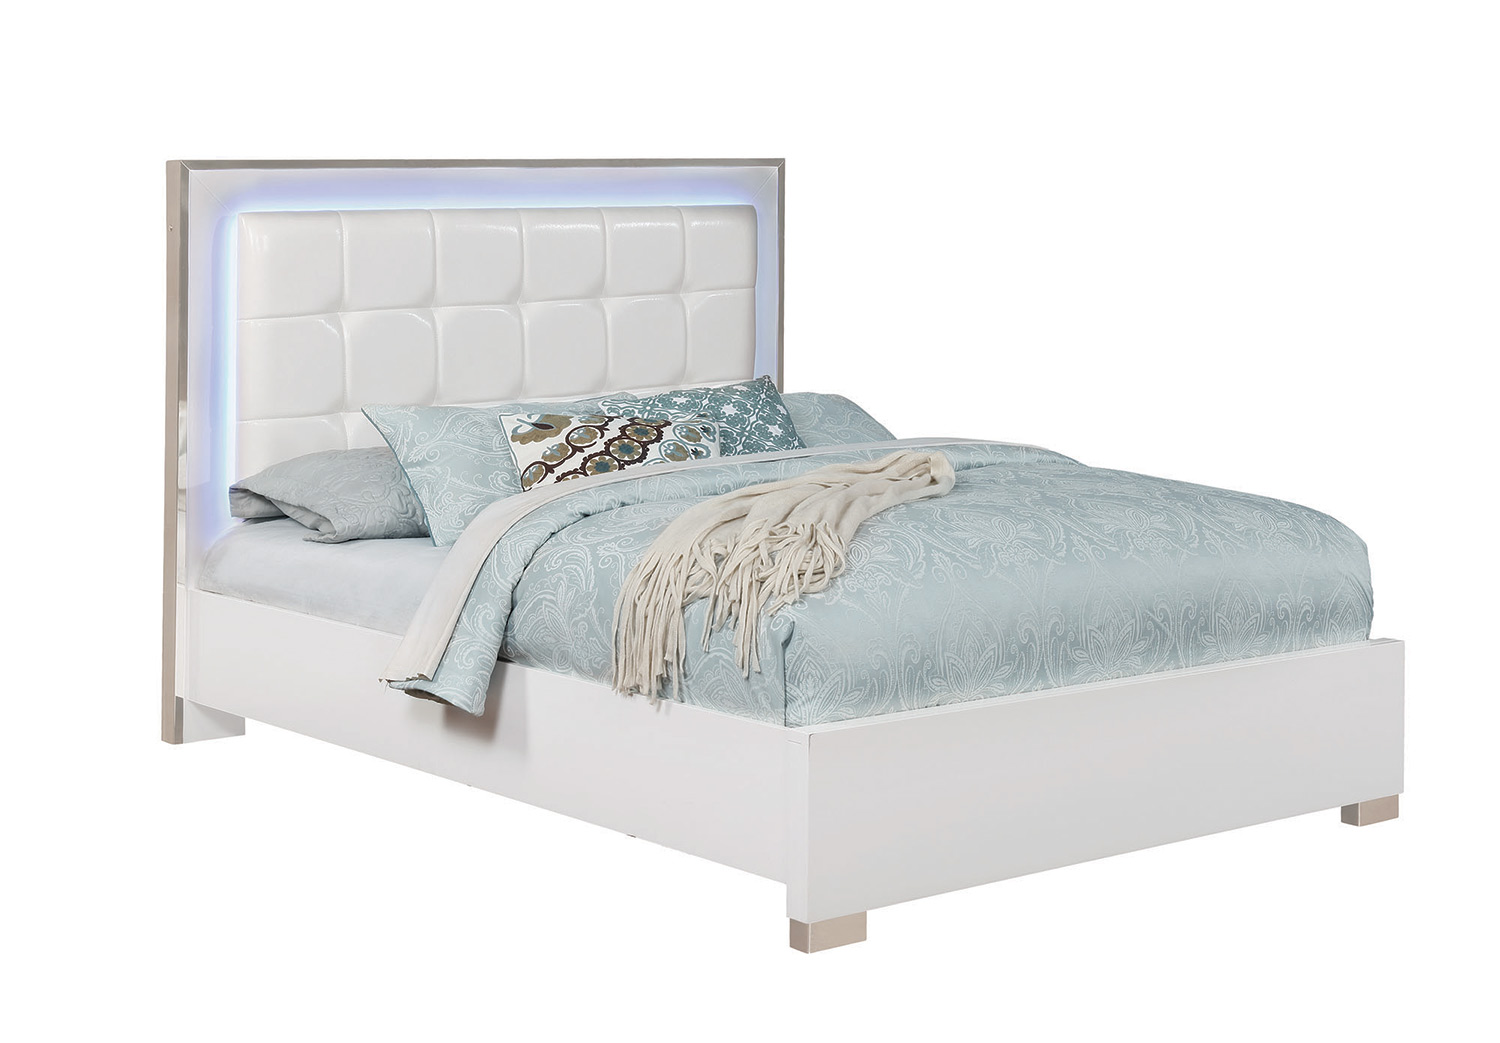 Coaster Traynor Upholstered Platform Bed With Led Lighting